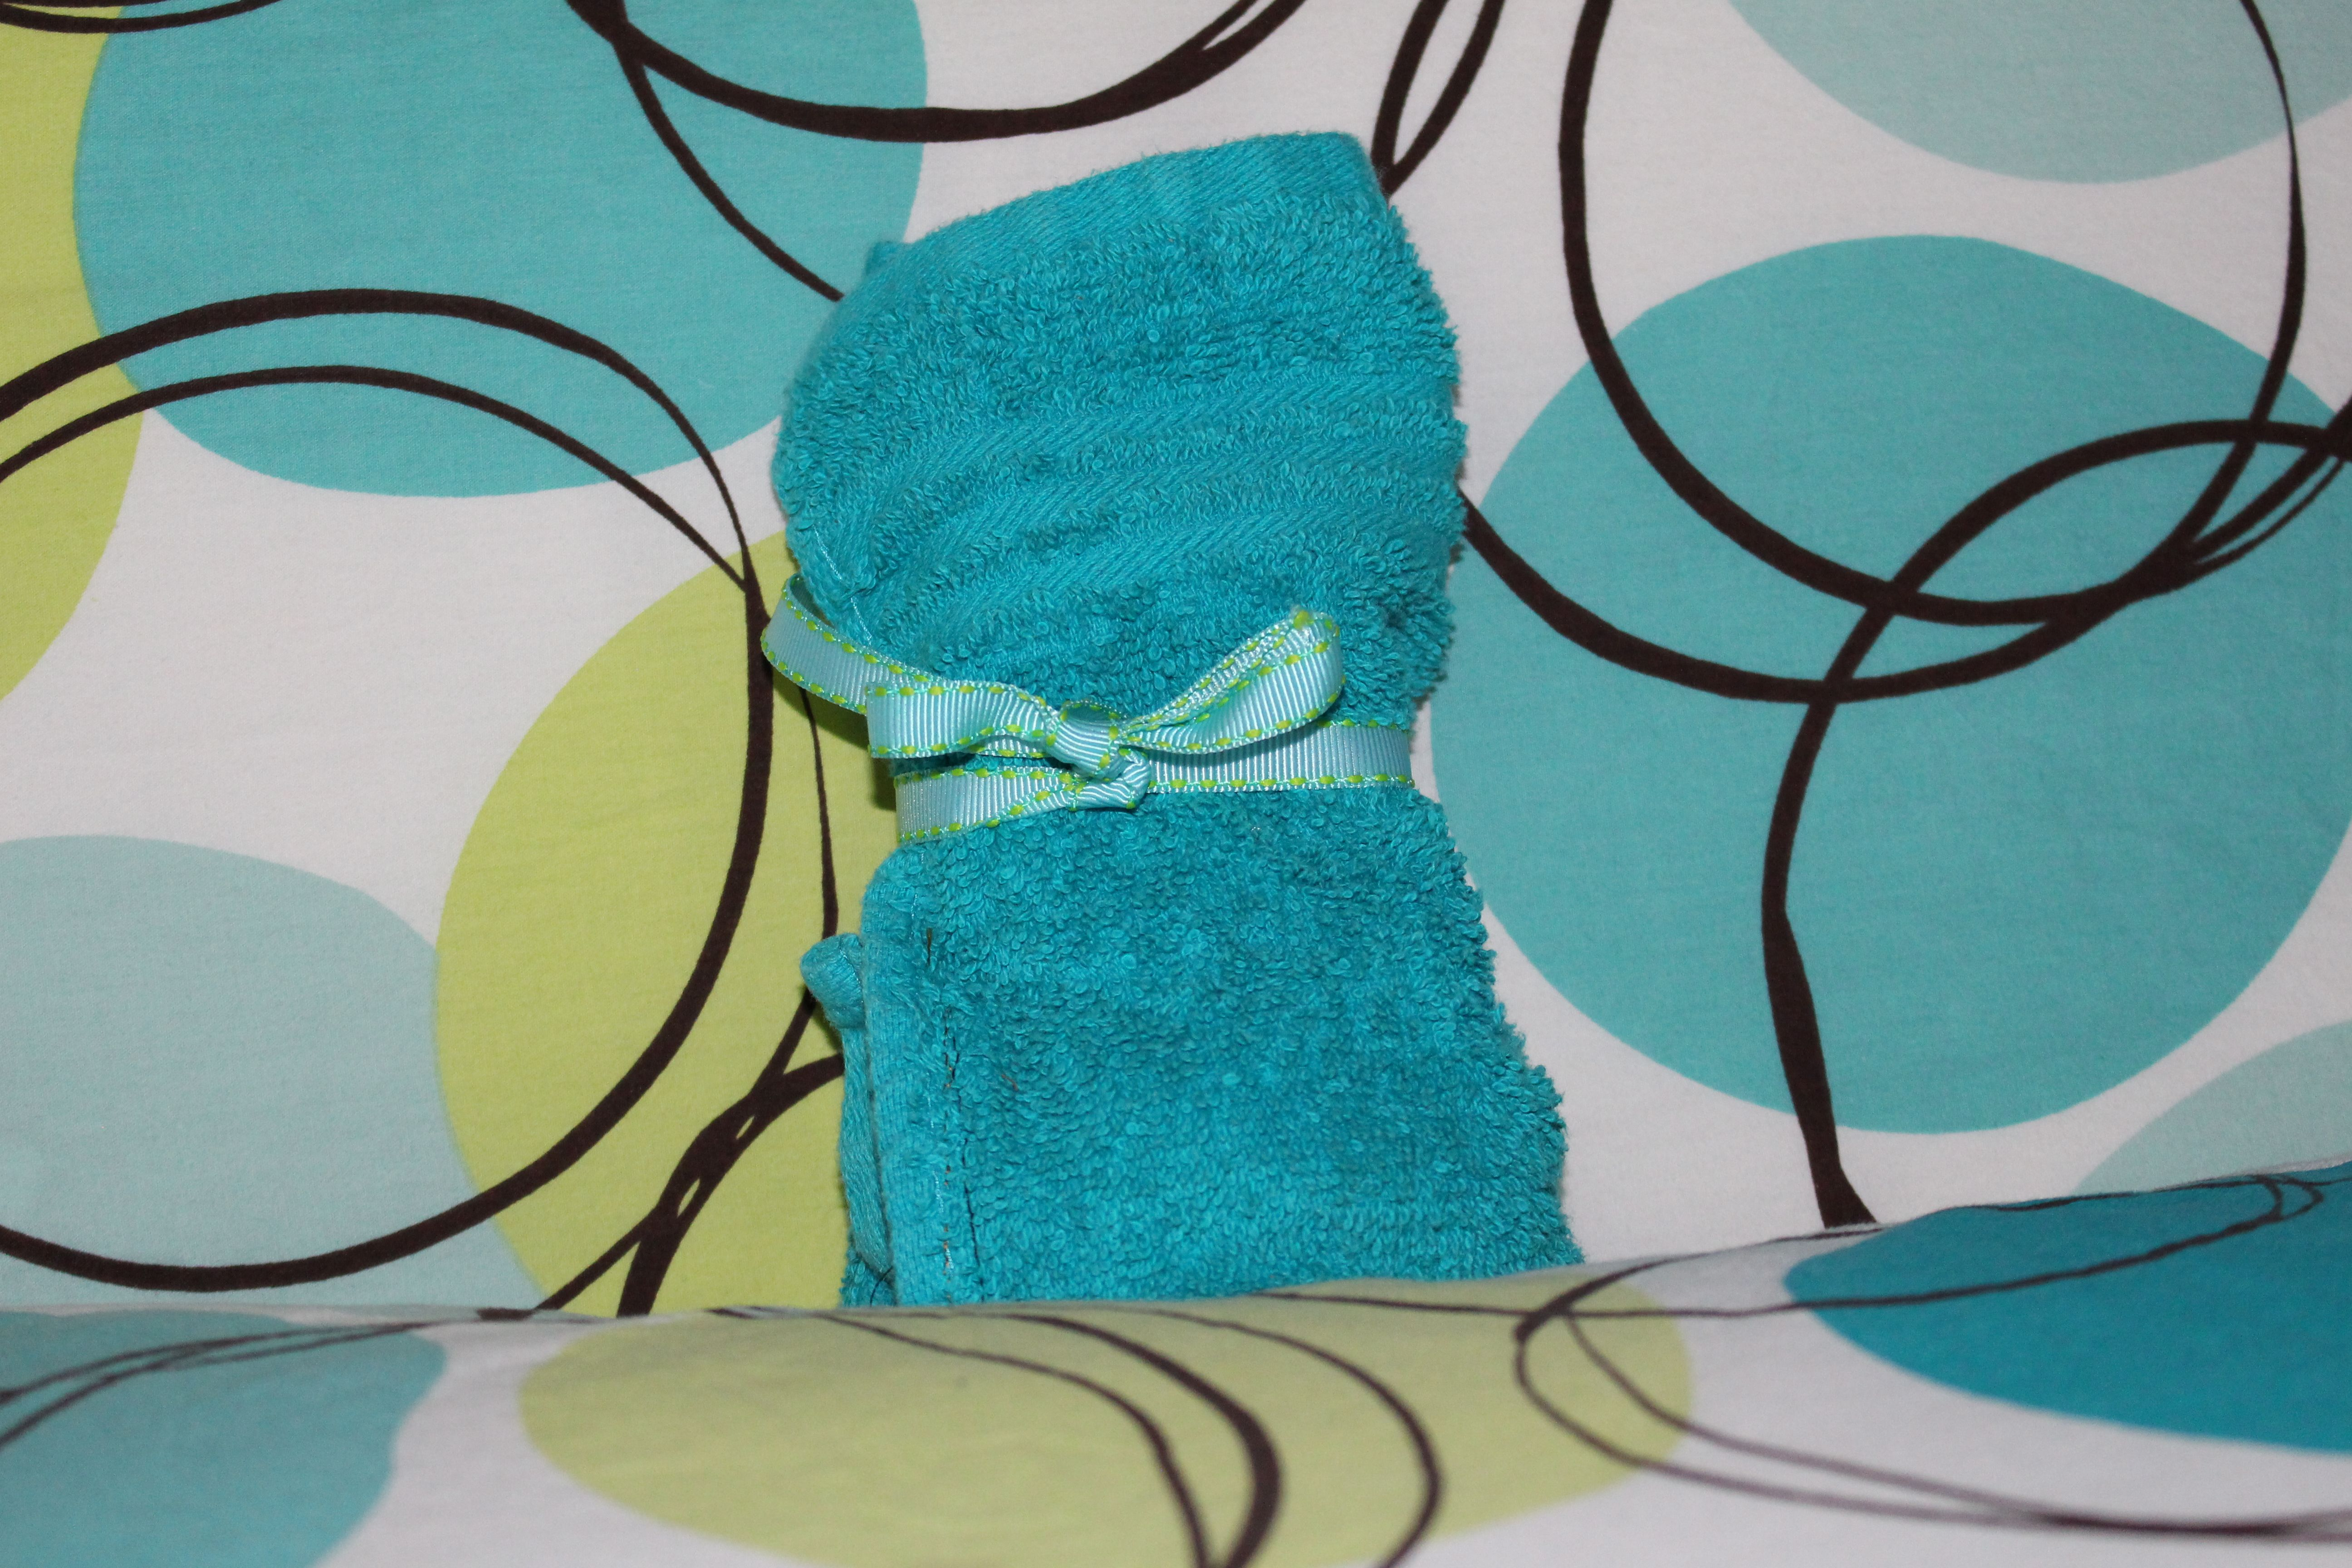 Terry Cloth Travel Towel to hold hygiene supplies when traveling